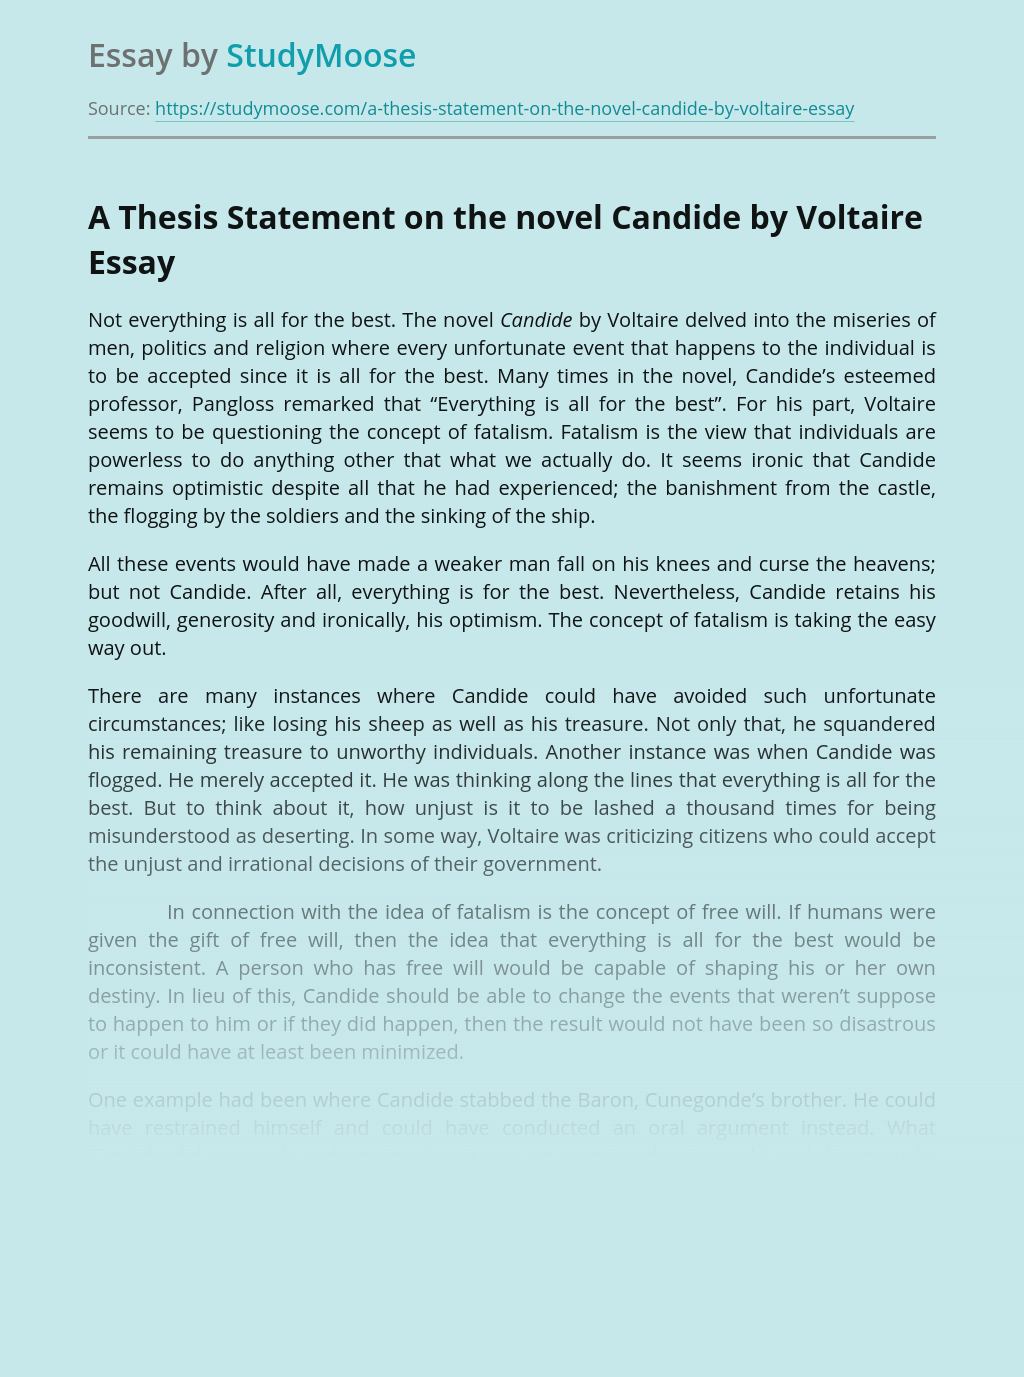 A Thesis Statement on the novel Candide by Voltaire